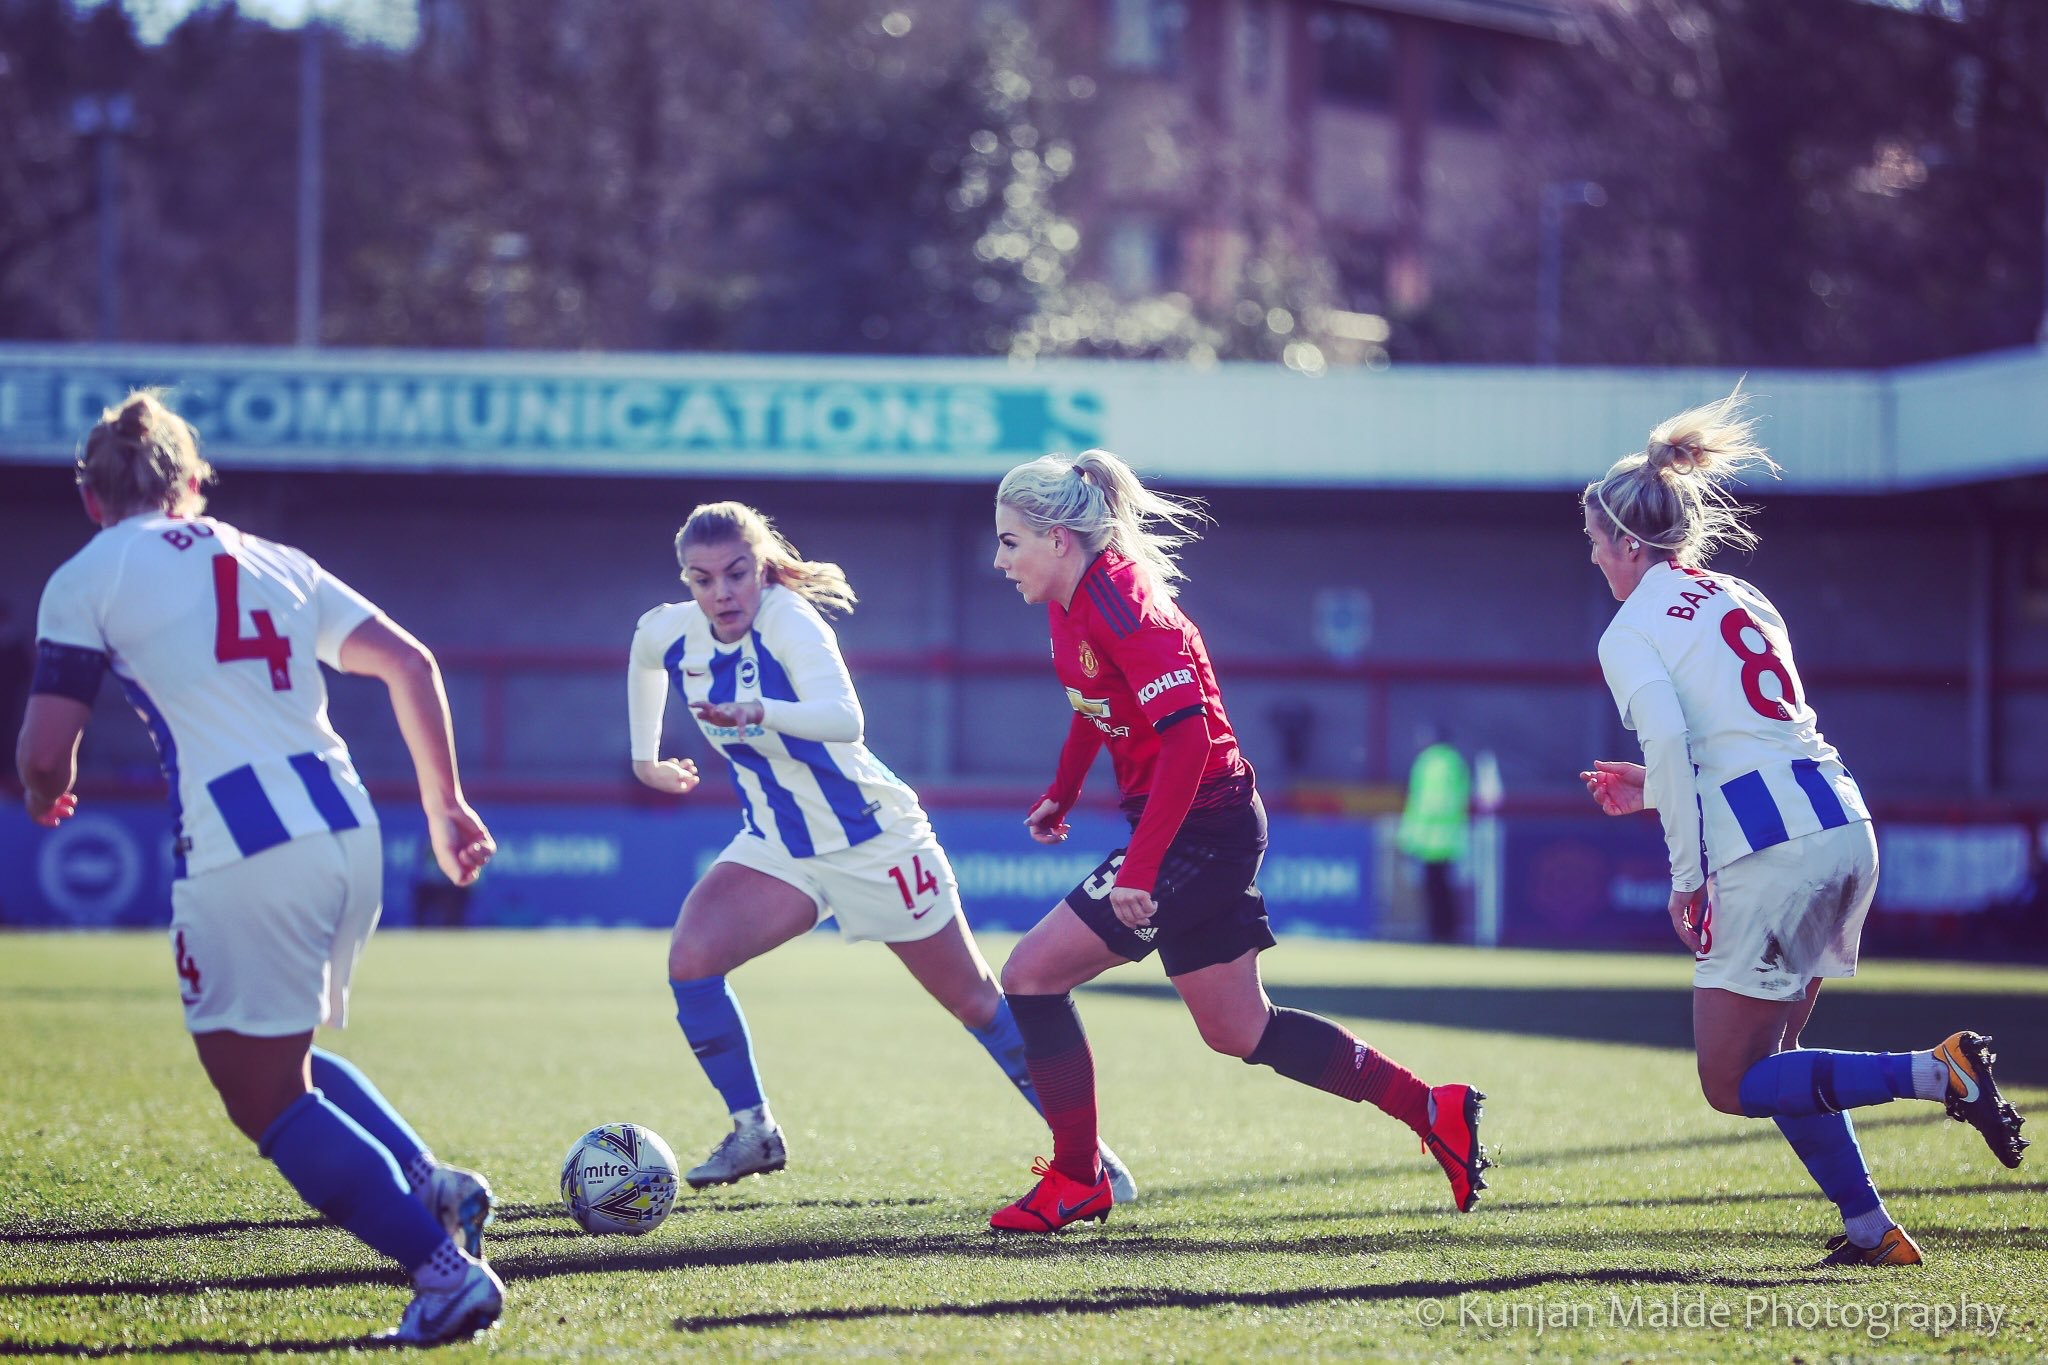 Alex Greenwood against Reading. Photo from @KunjanMalde